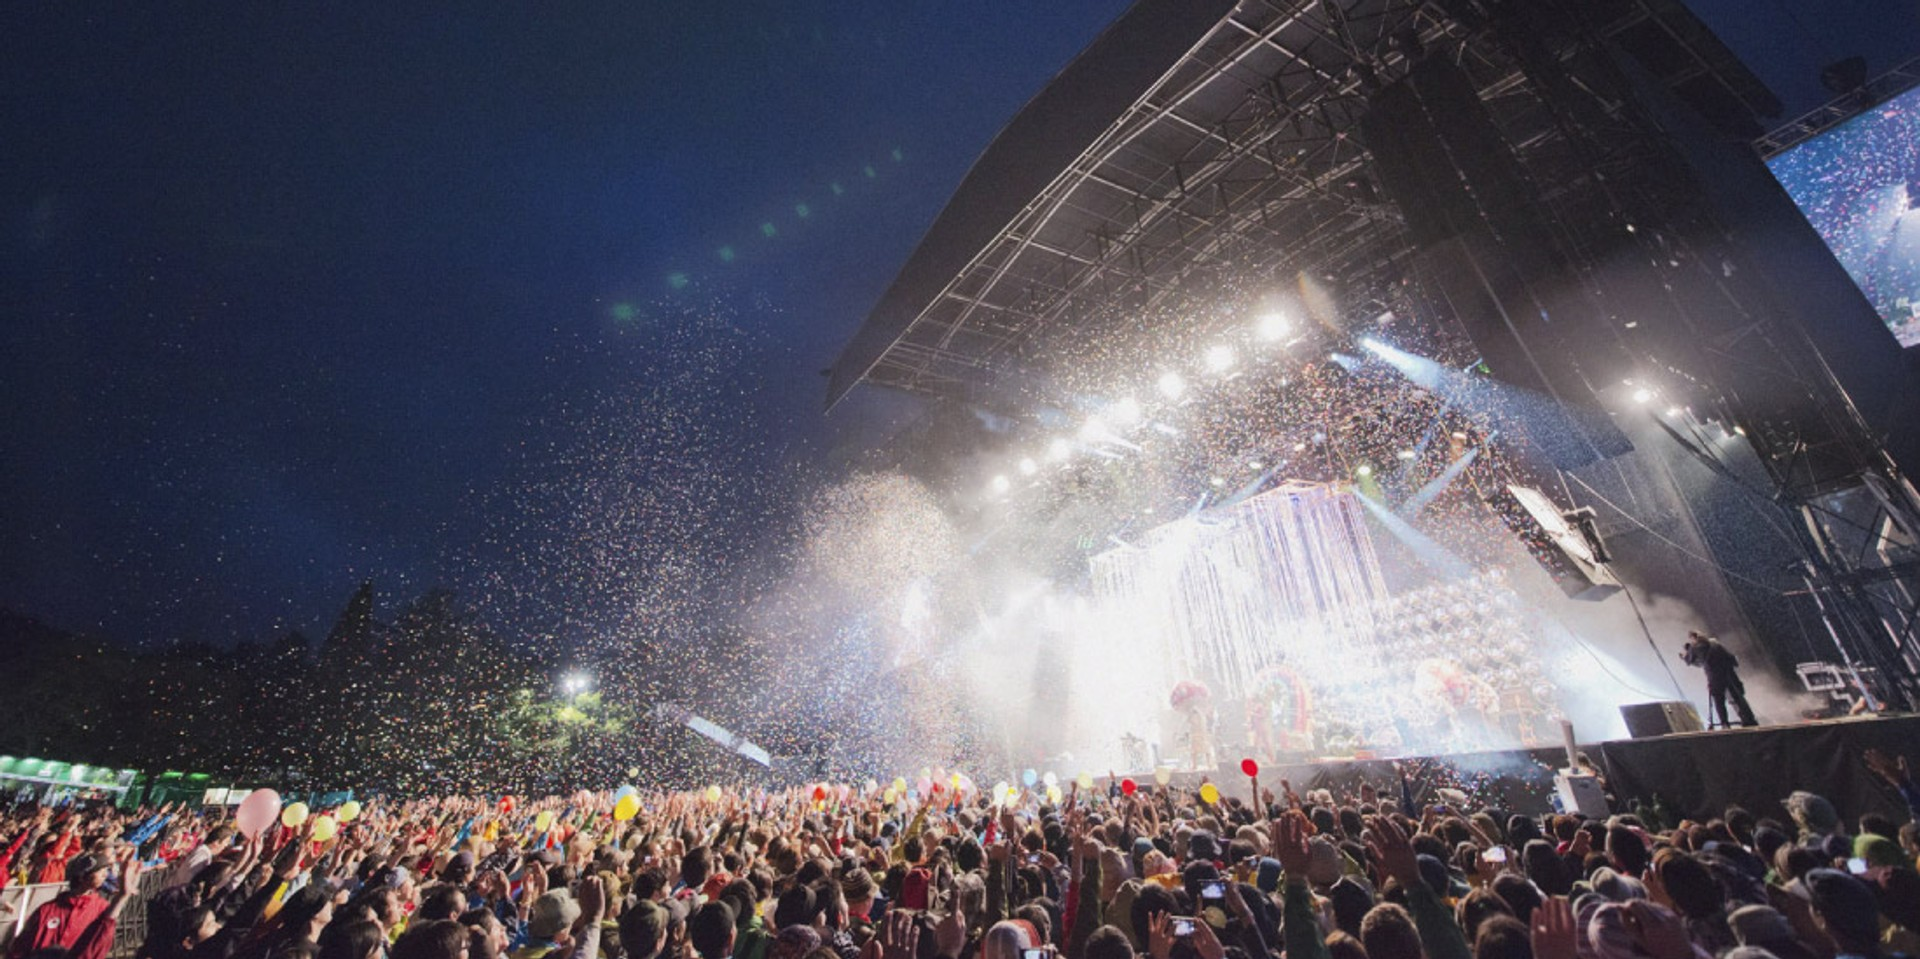 Red Hot Chili Peppers, Sigur Ros, Disclosure and more confirmed for Fuji Rock Festival